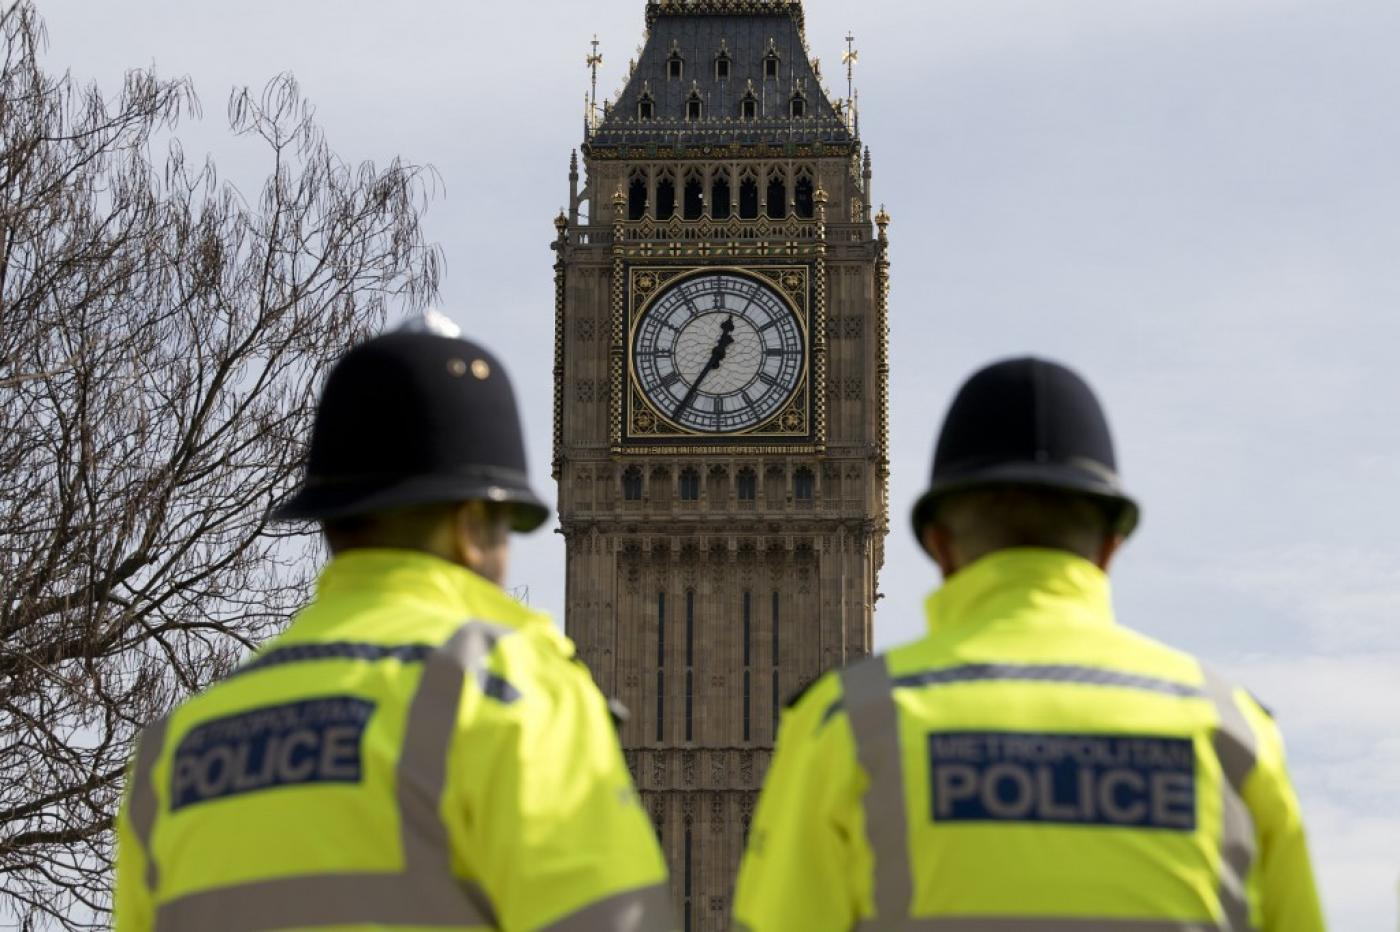 Counter-Terrorism Programmes Are Violating Human Rights, Un Expert Says